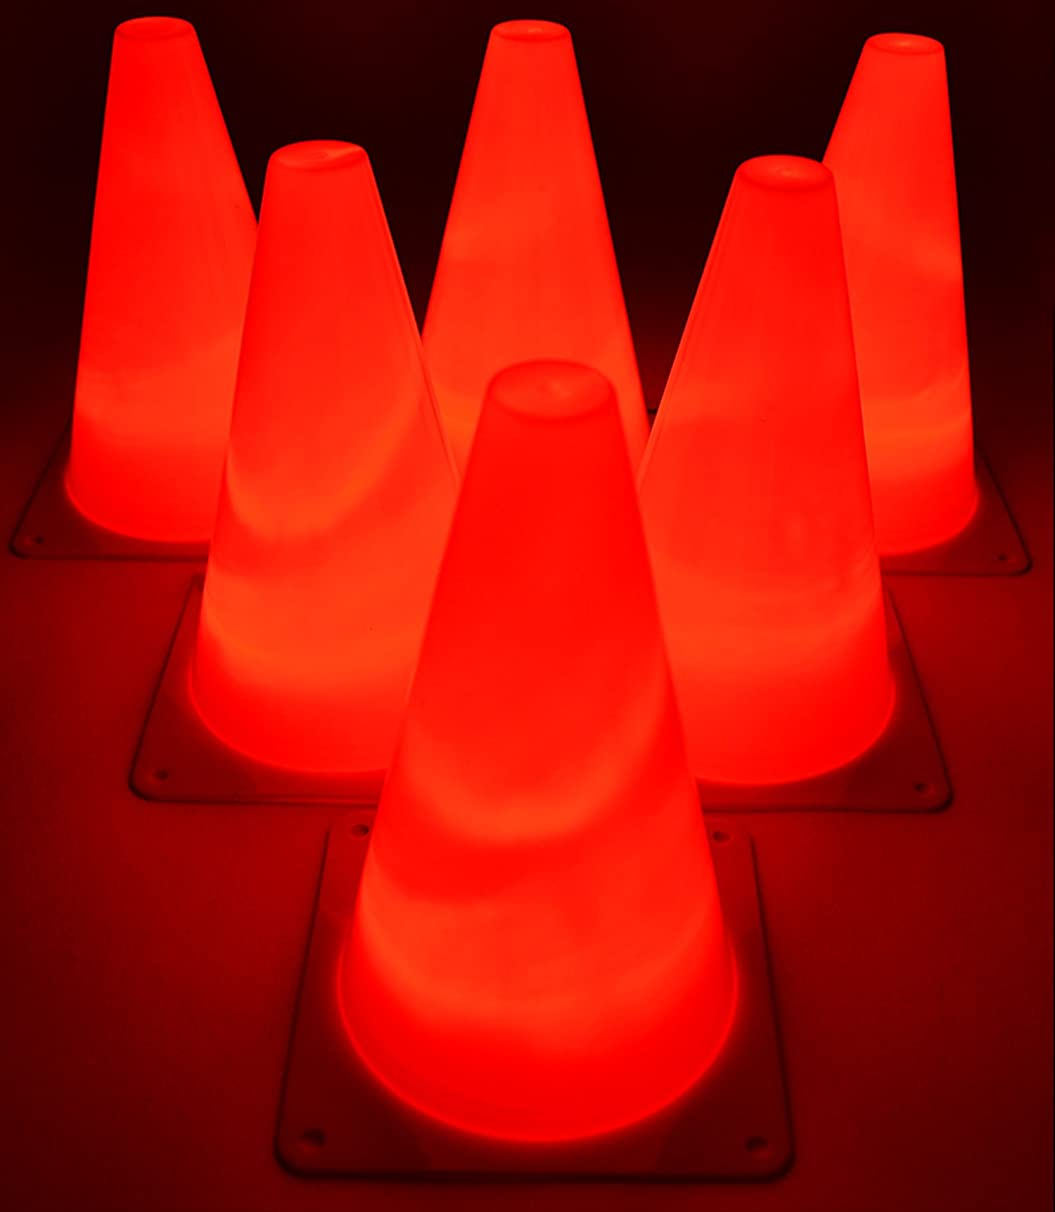 GlowCity Light Up LED Agility Cone Set 7 Inches Tall (6 Pack)